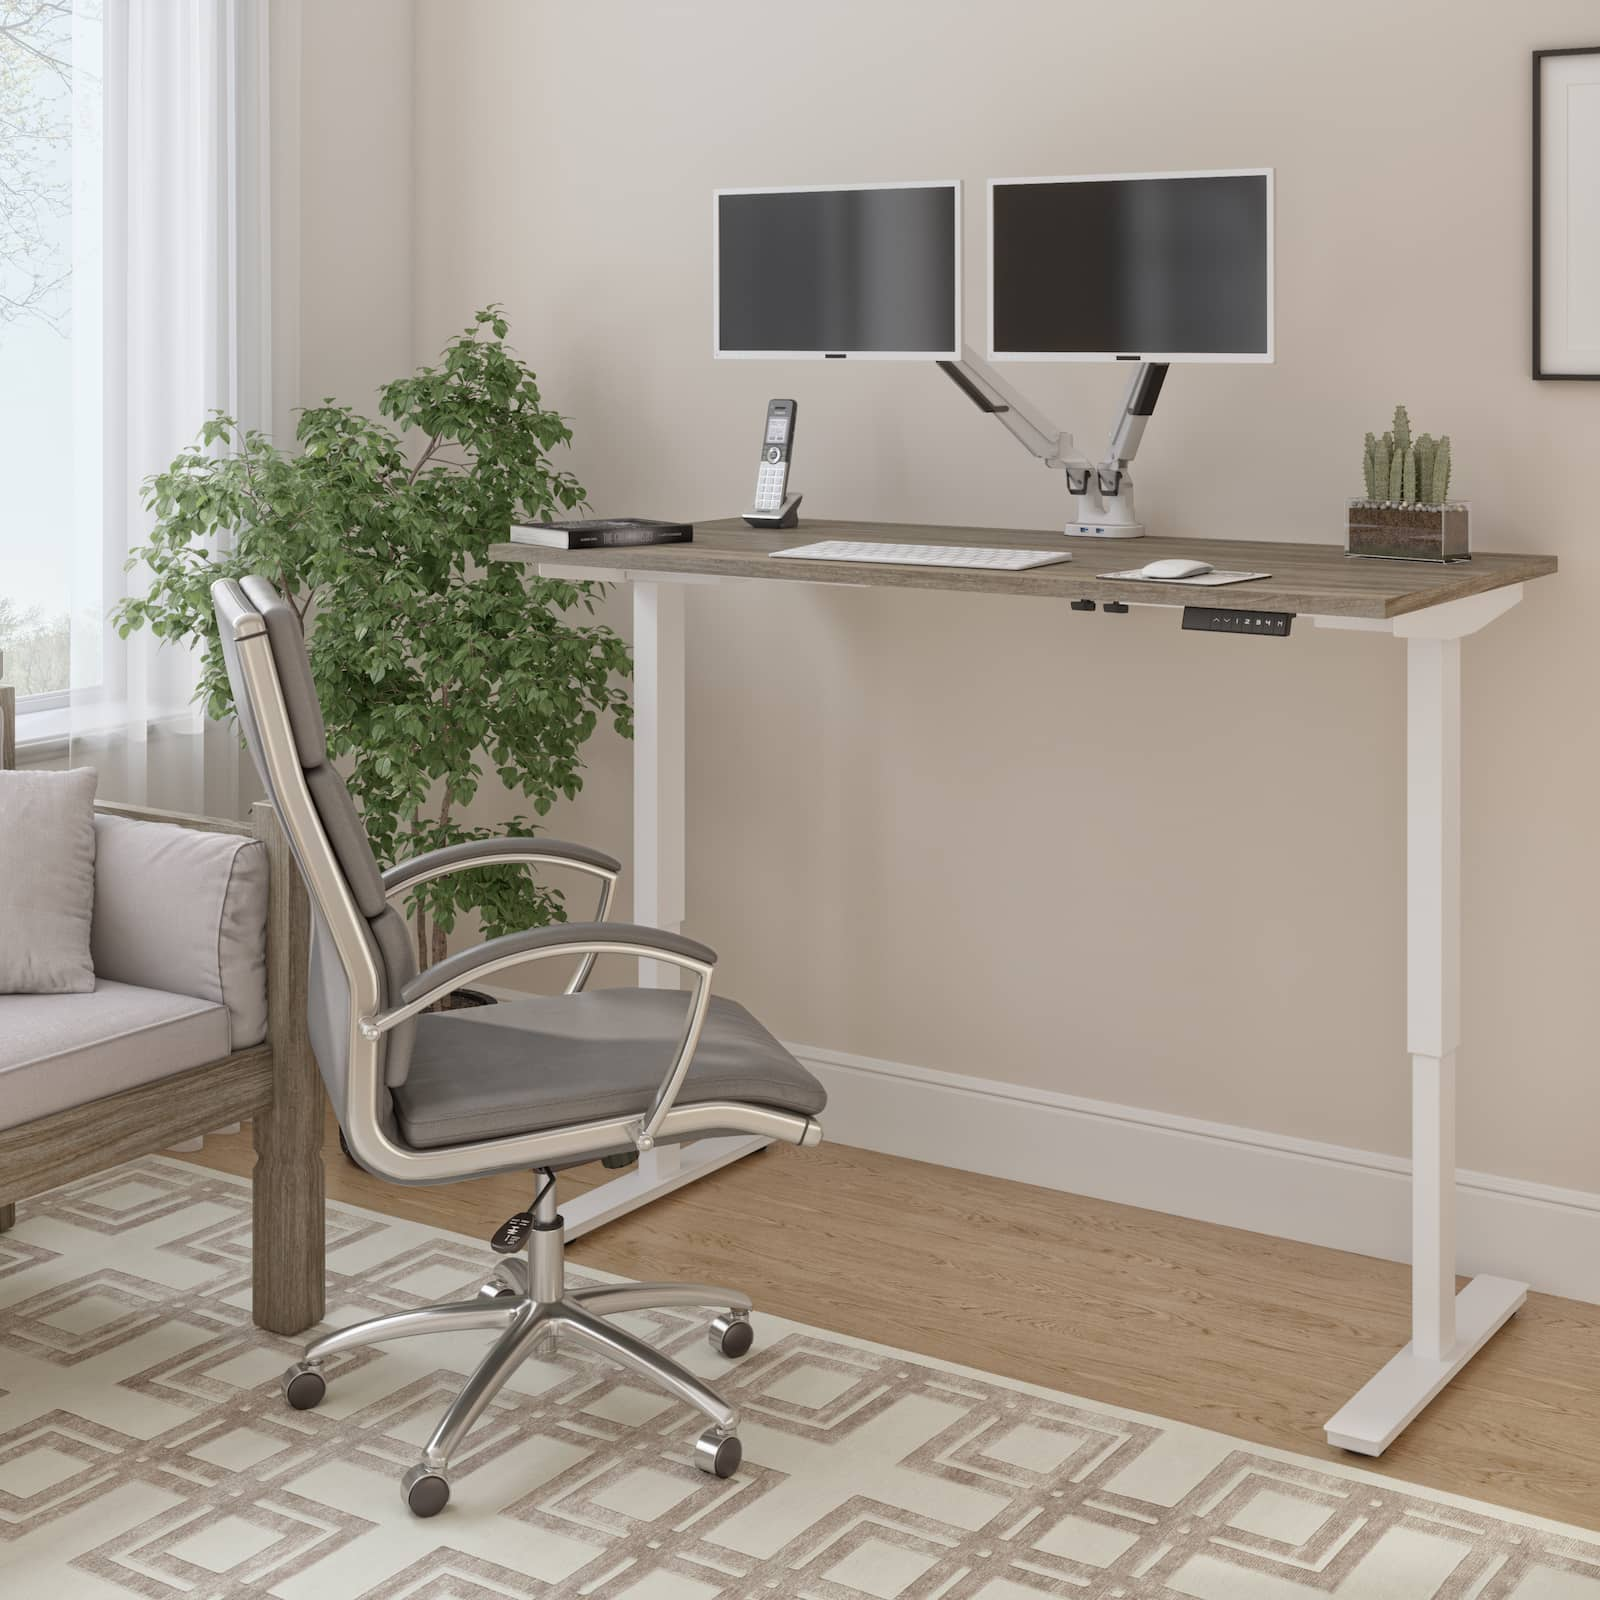 Work Healthier and Happier! Find the Perfect Adjustable Desk in Canada